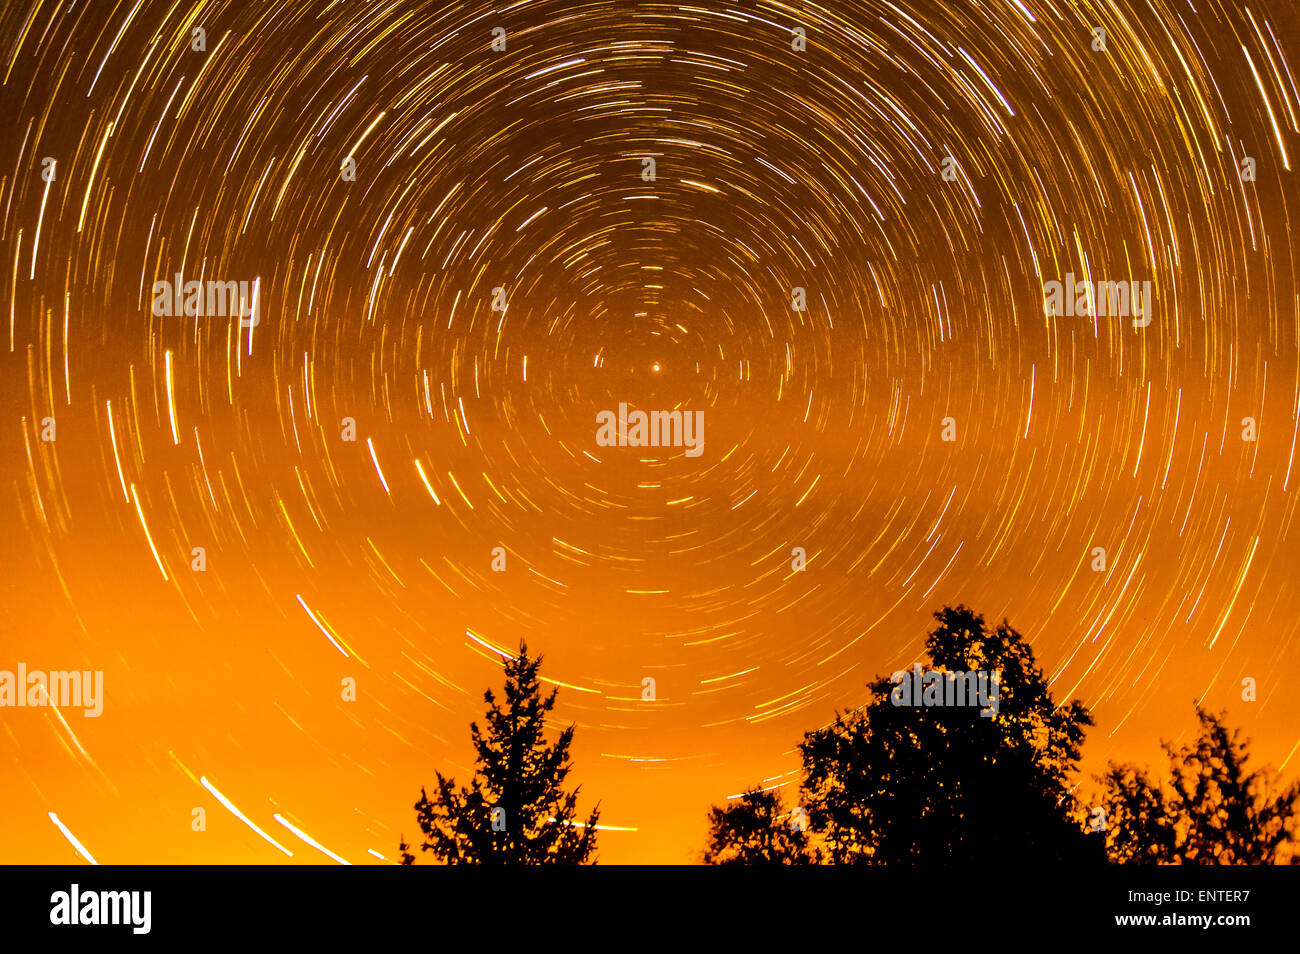 A star trail image showing the movement of the stars as the Earth moves around on its axis in the night sky, Scotland, - Stock Image